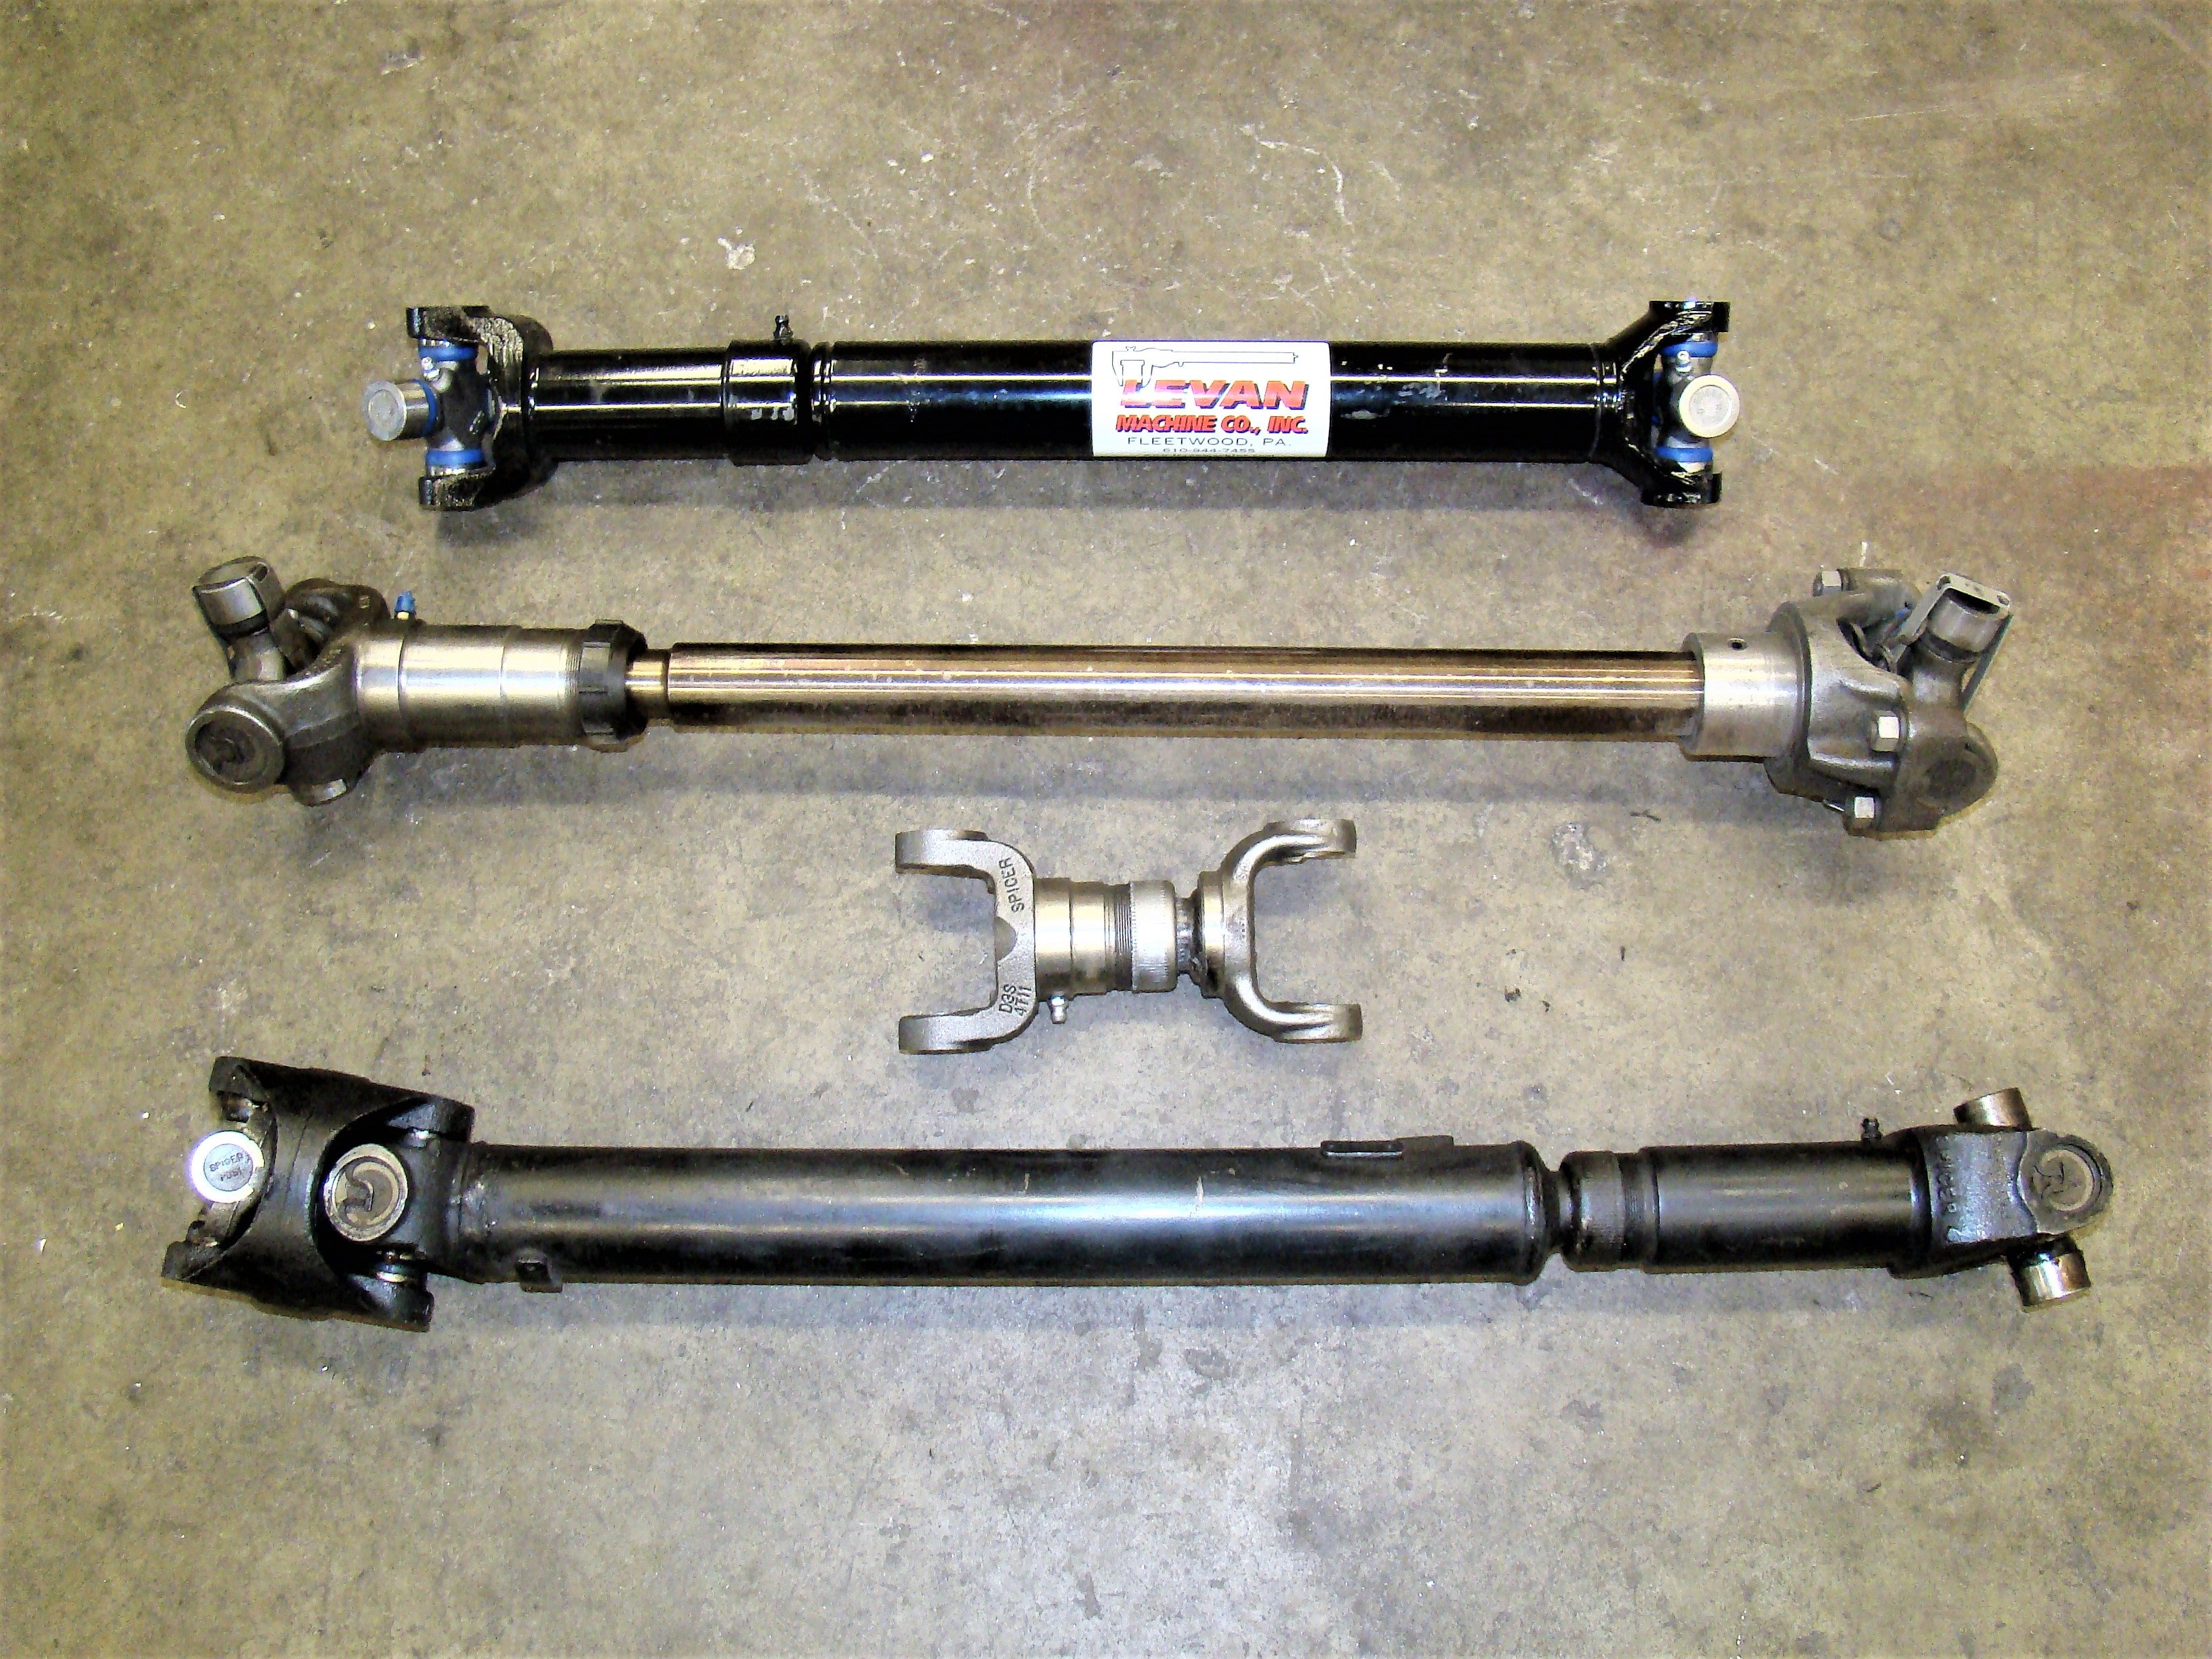 Collection of driveshafts